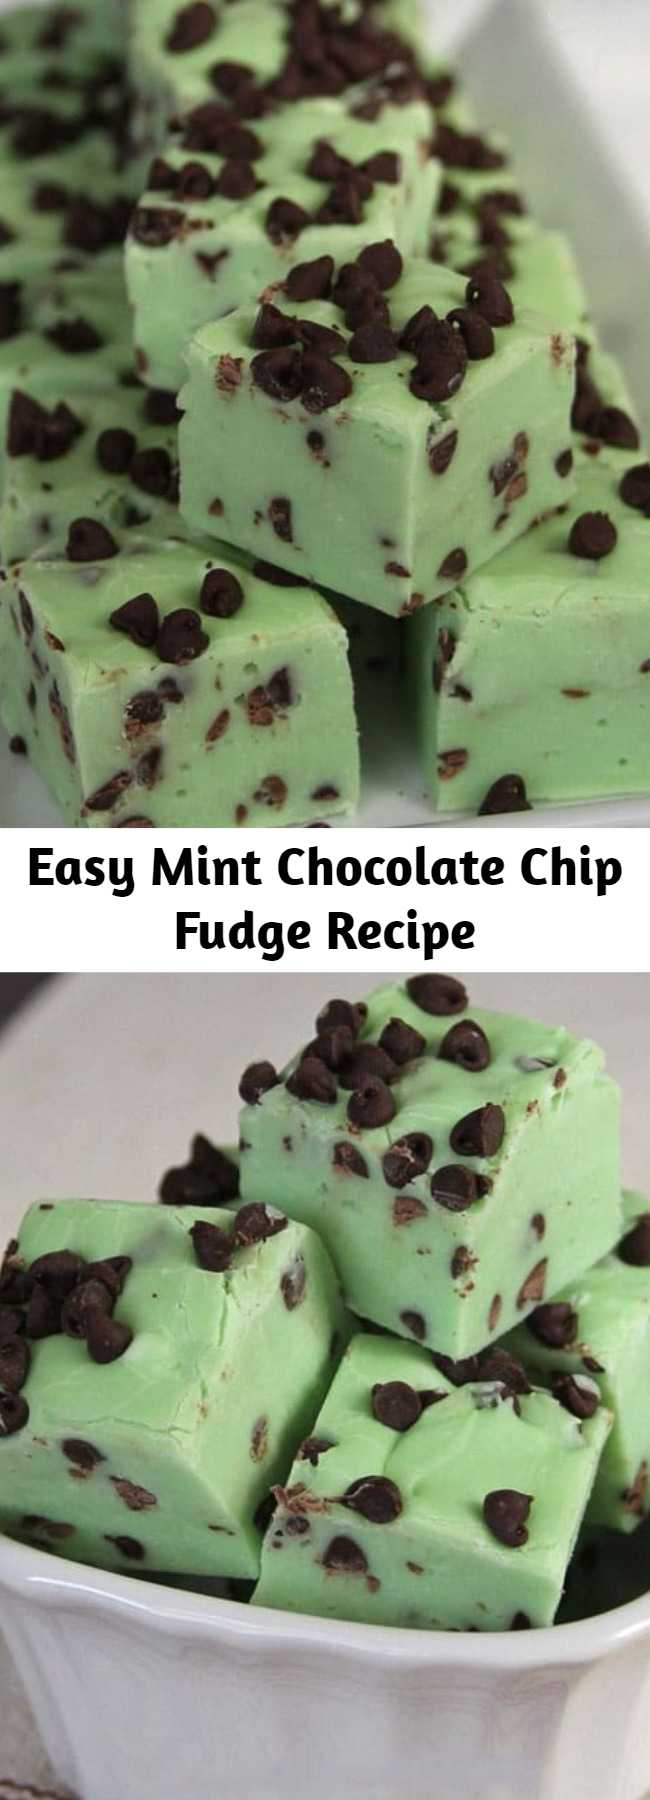 Easy Mint Chocolate Chip Fudge Recipe - Mint Chocolate Chip Fudge-same great taste you love as ice cream in a creamy melt in your mouth fudge!